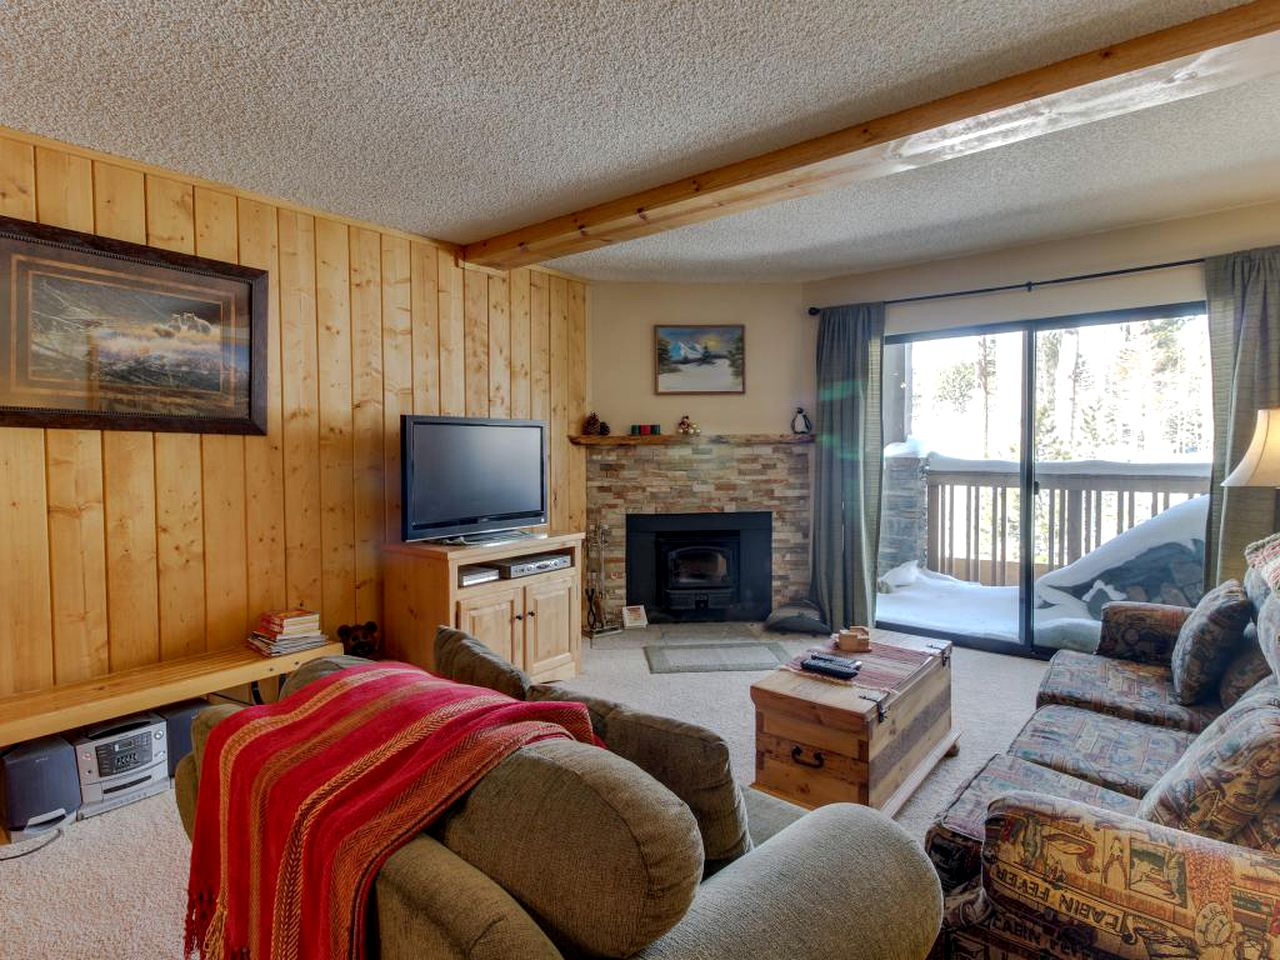 Living room with TV and fireplace in Mammoth Lakes vacation rental for a visit to Yosemtie National Park.